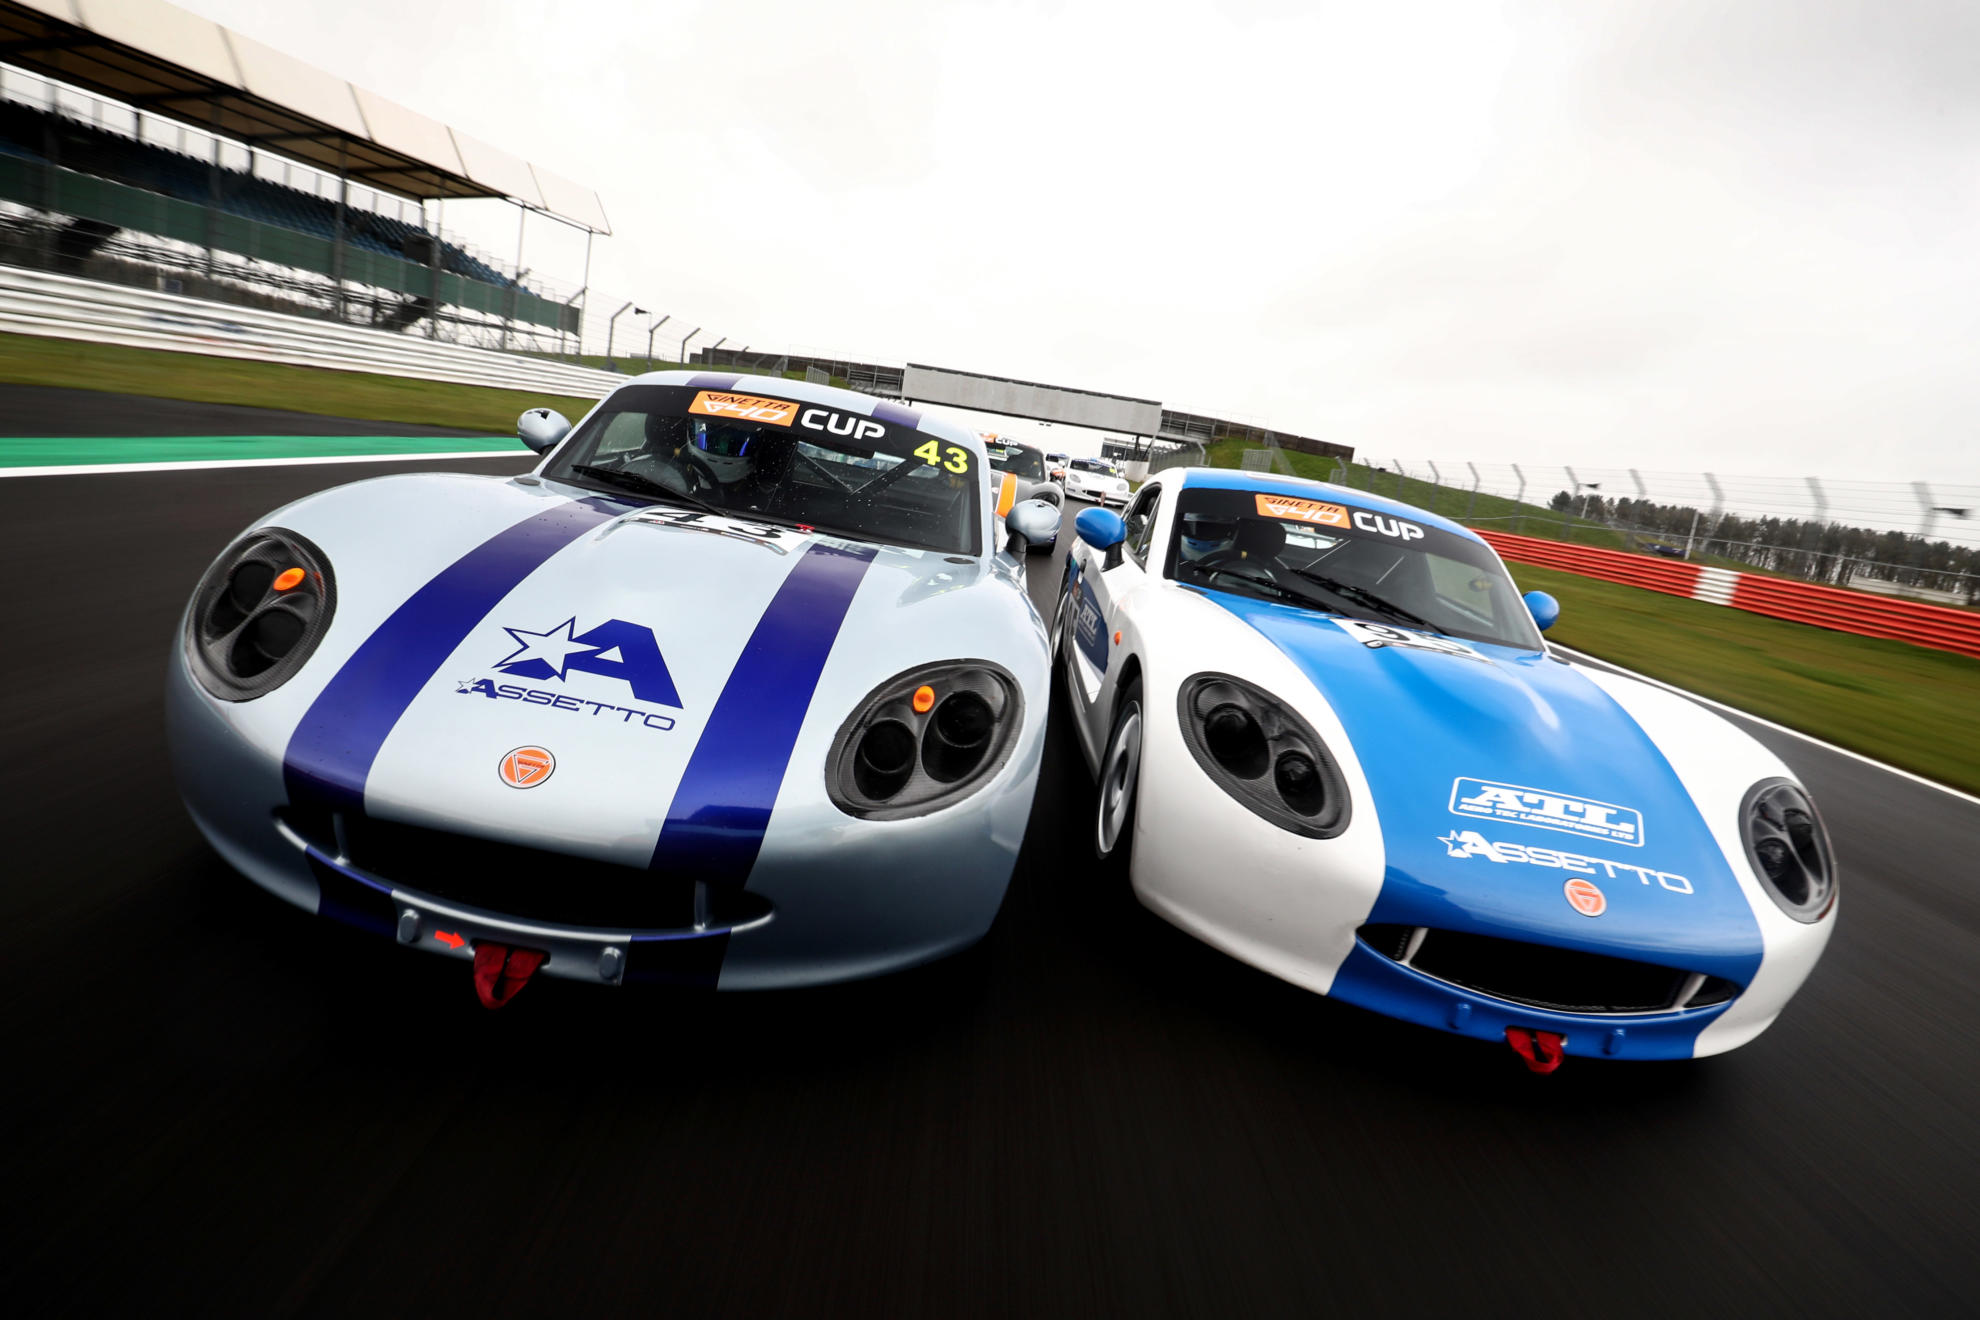 2020 Ginetta G40 Cup, Round One, Oulton Park